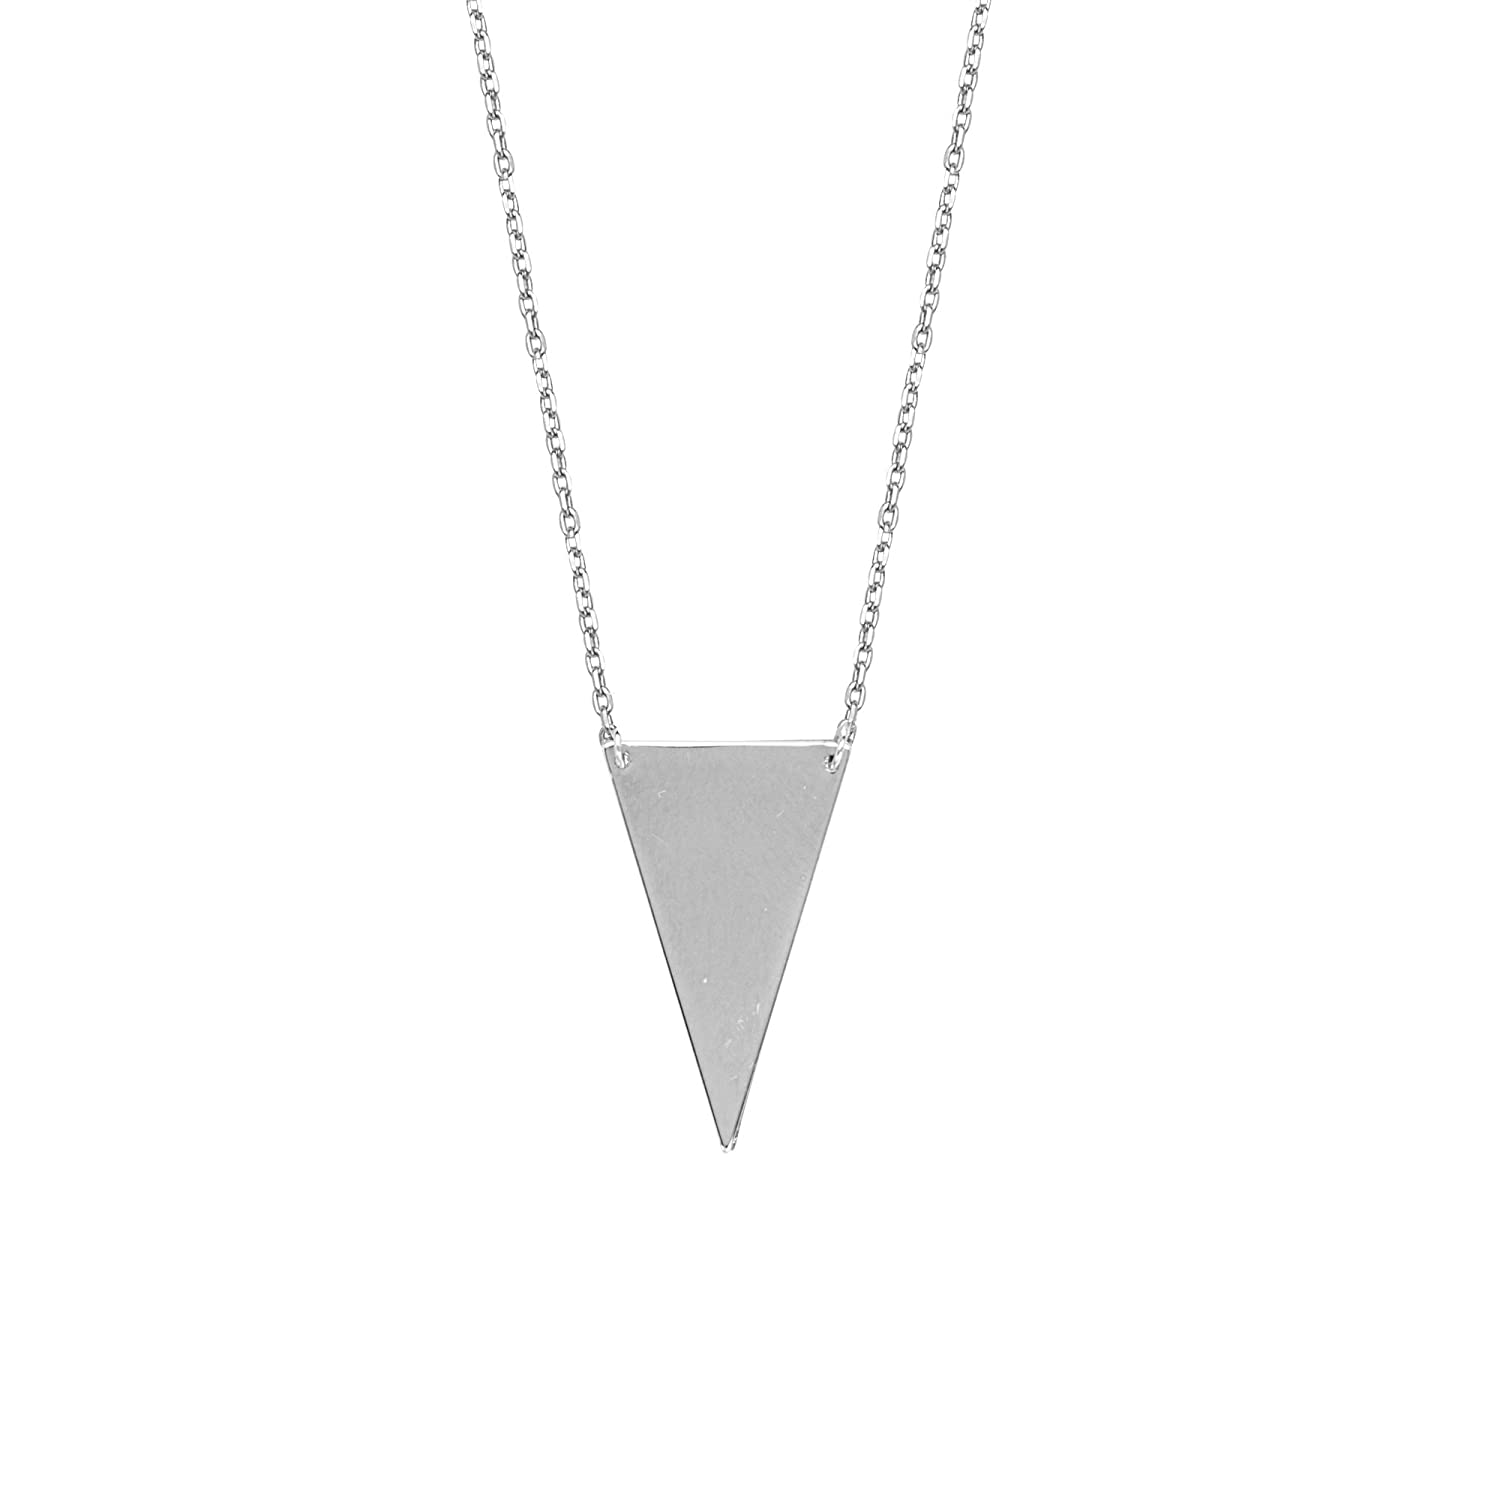 Adj.Down Triangle Necklace D//C Cable DiamondJewelryNY Silver Pendant